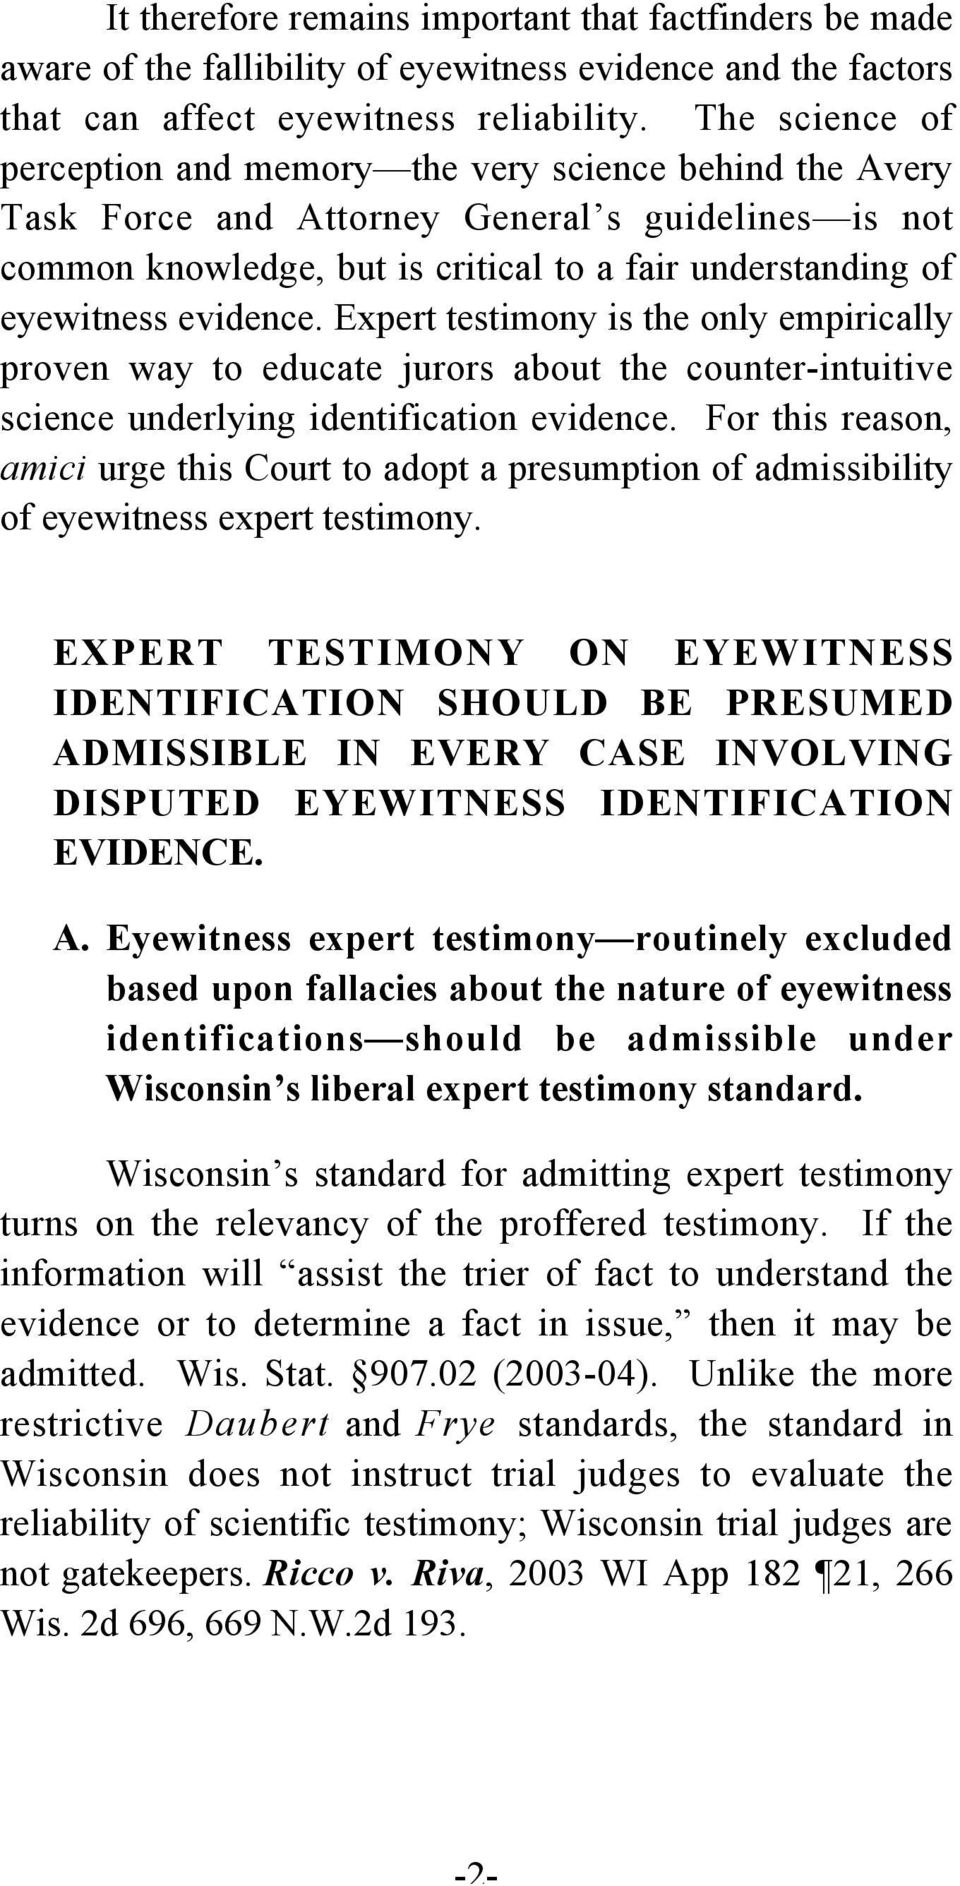 evidence. Expert testimony is the only empirically proven way to educate jurors about the counter-intuitive science underlying identification evidence.